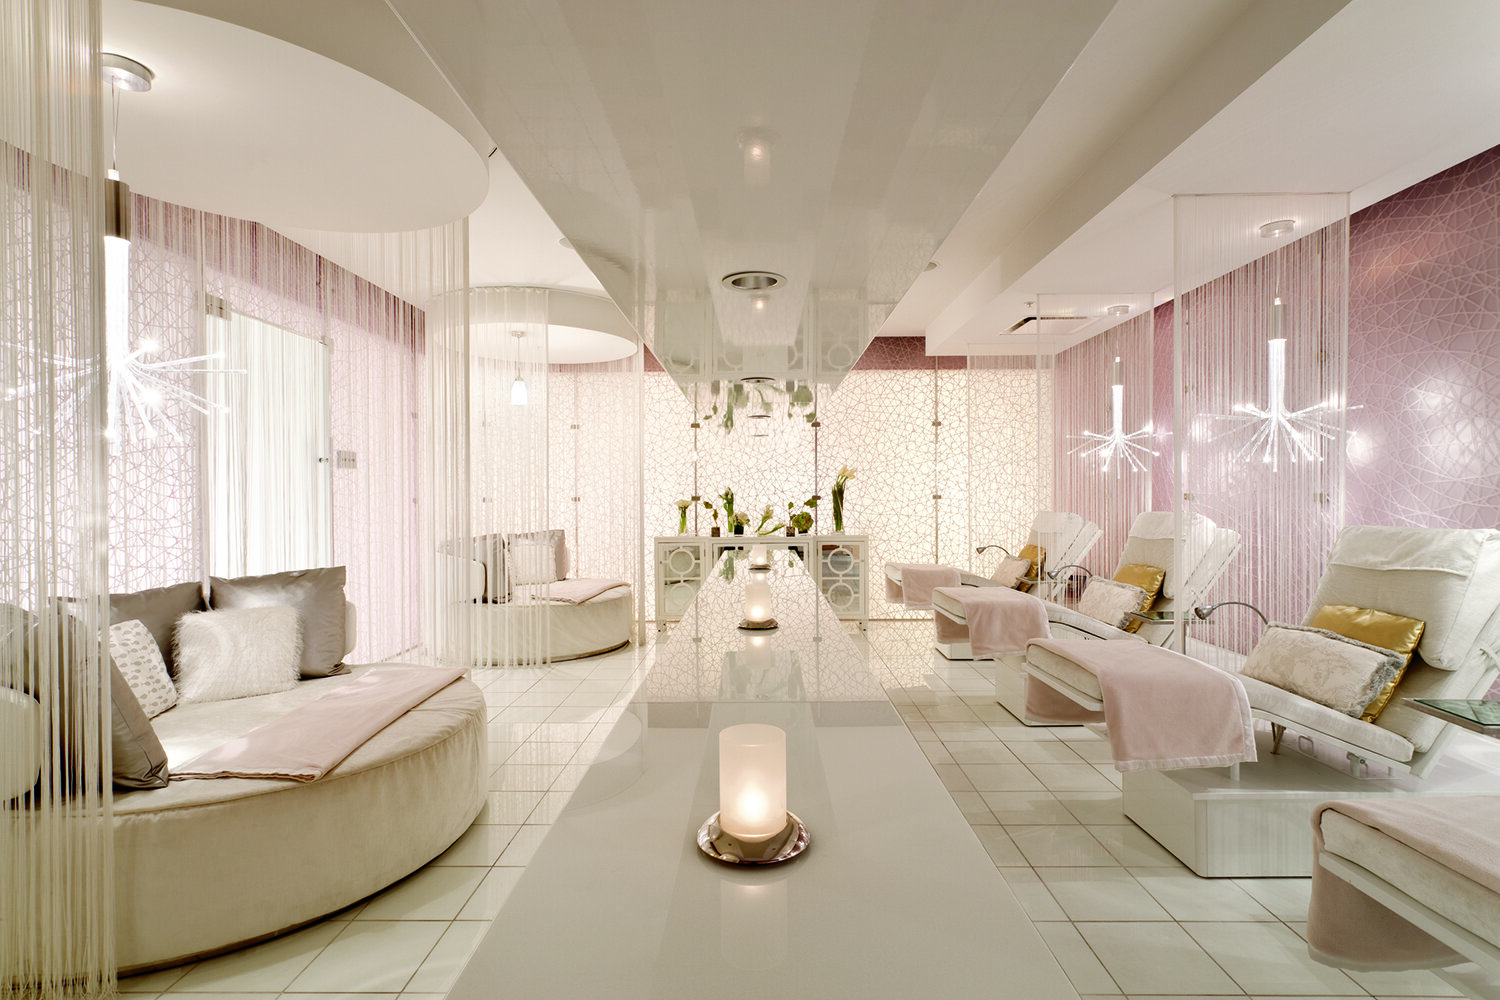 The Ritz-Carlton Spa, Los Angeles is inspired by Old Hollywood Glamour.